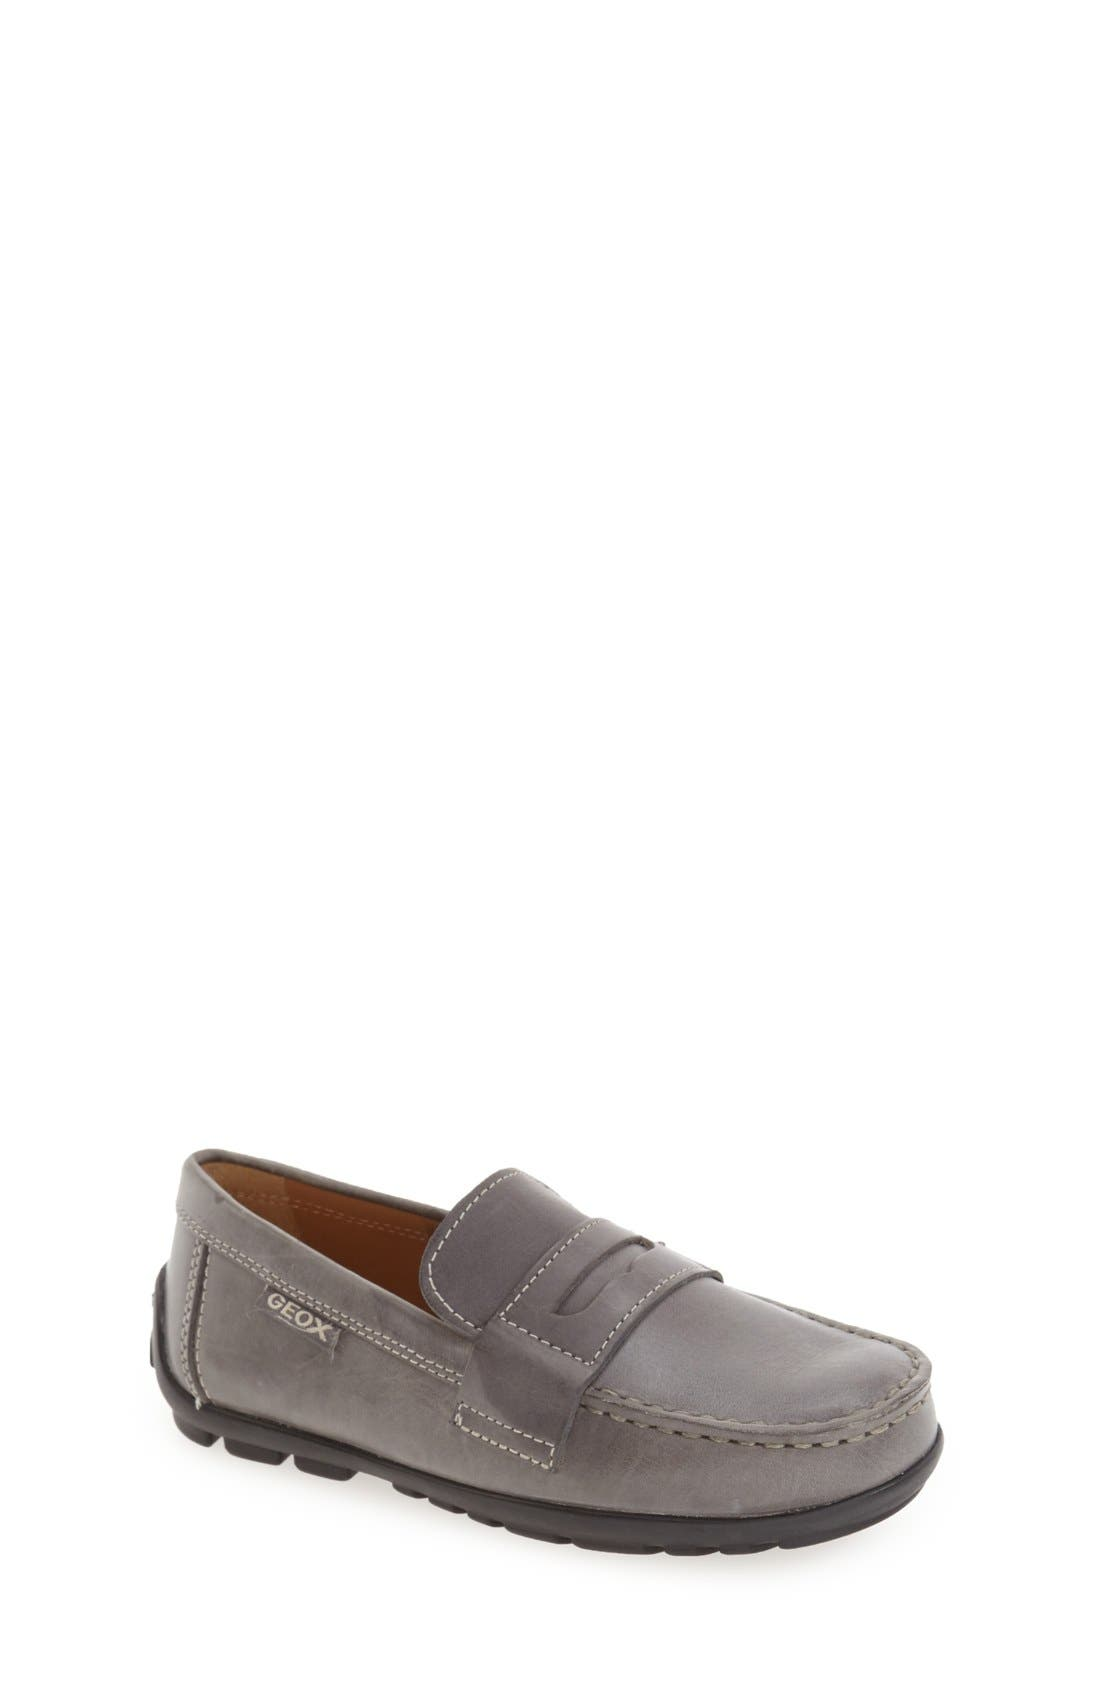 GEOX 'Fast' Penny Loafer